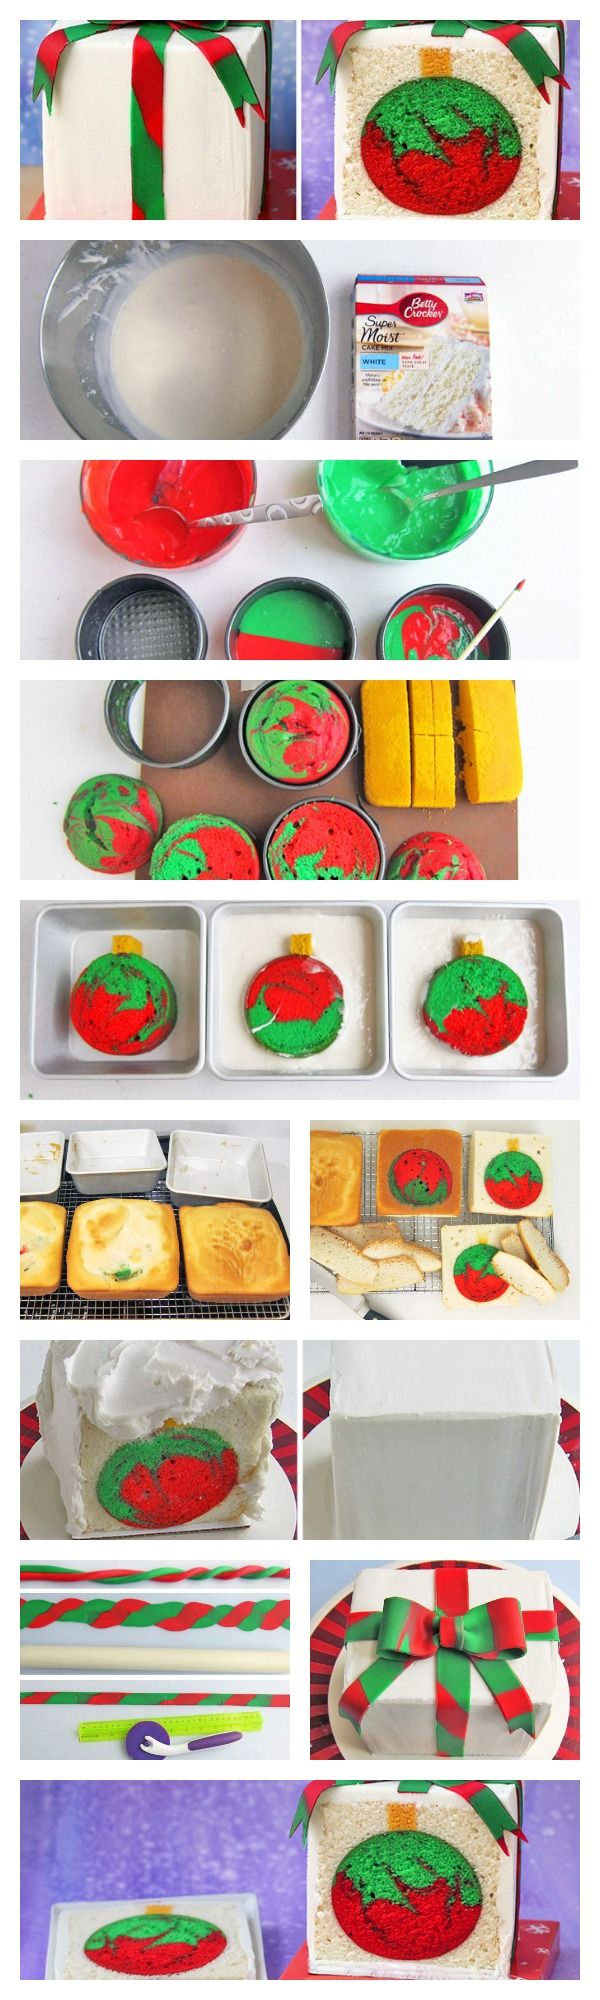 A cake decorated to look like a Christmas present is cut to reveal an ornament…